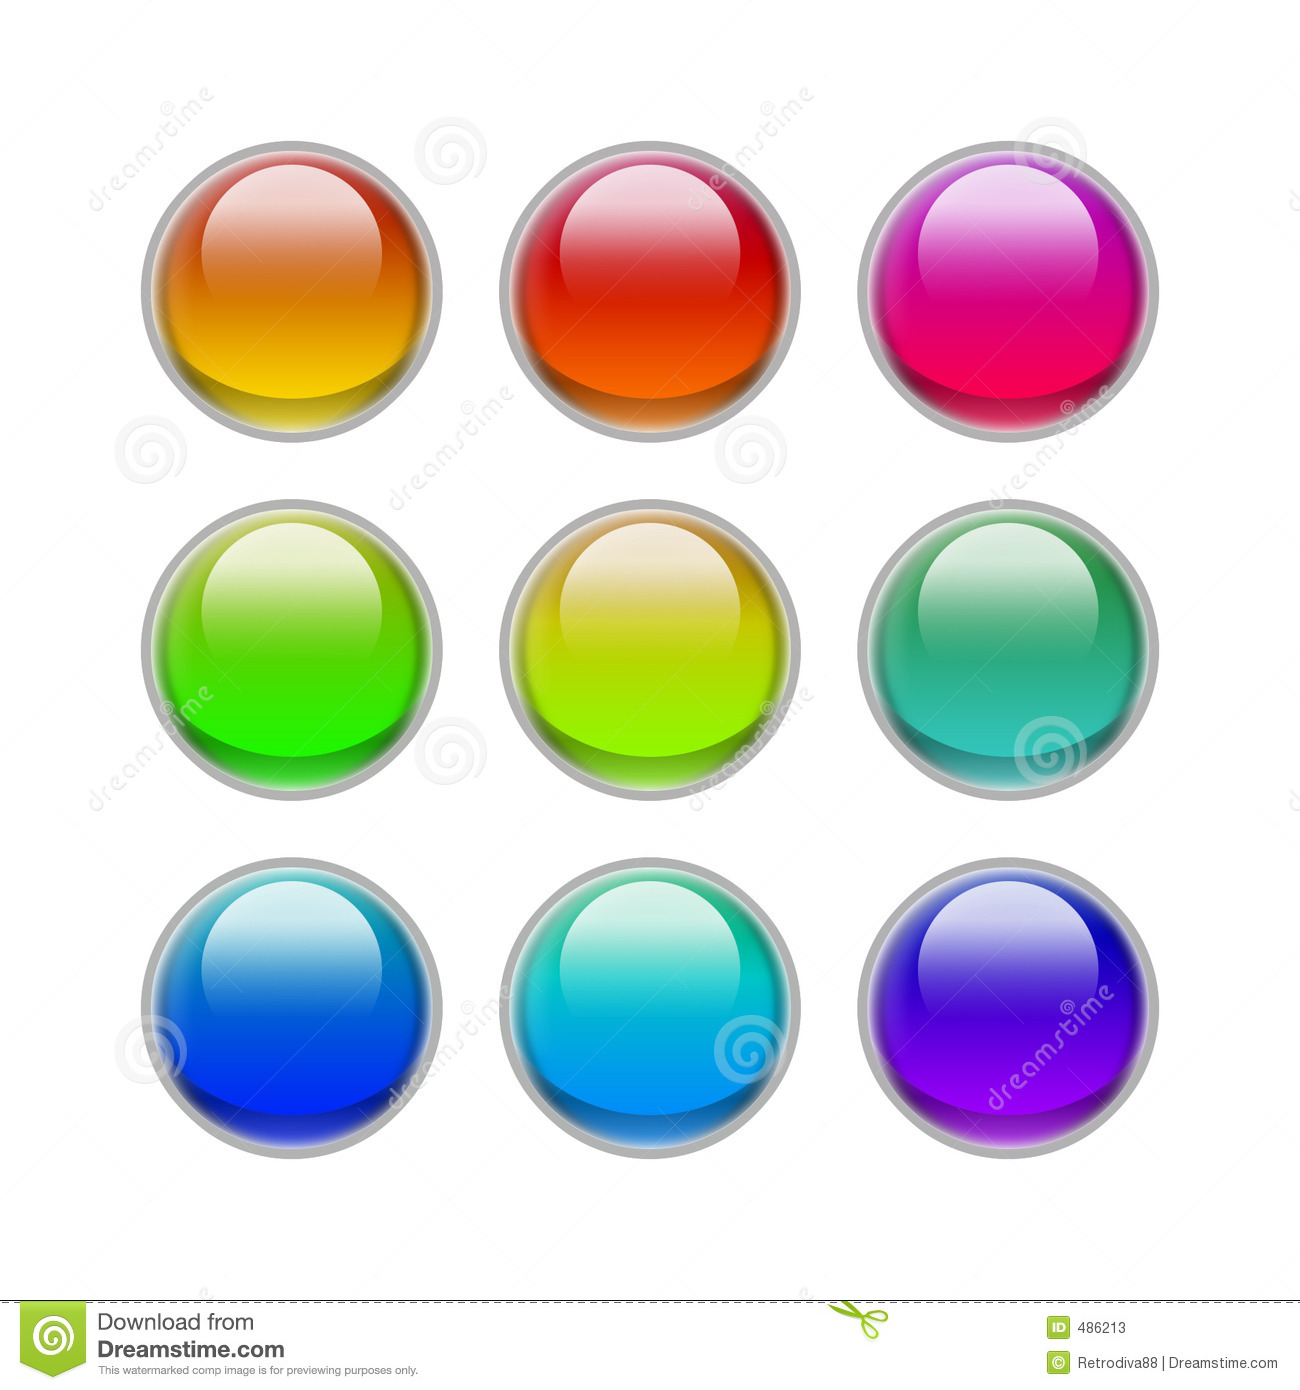 Eye candy buttons